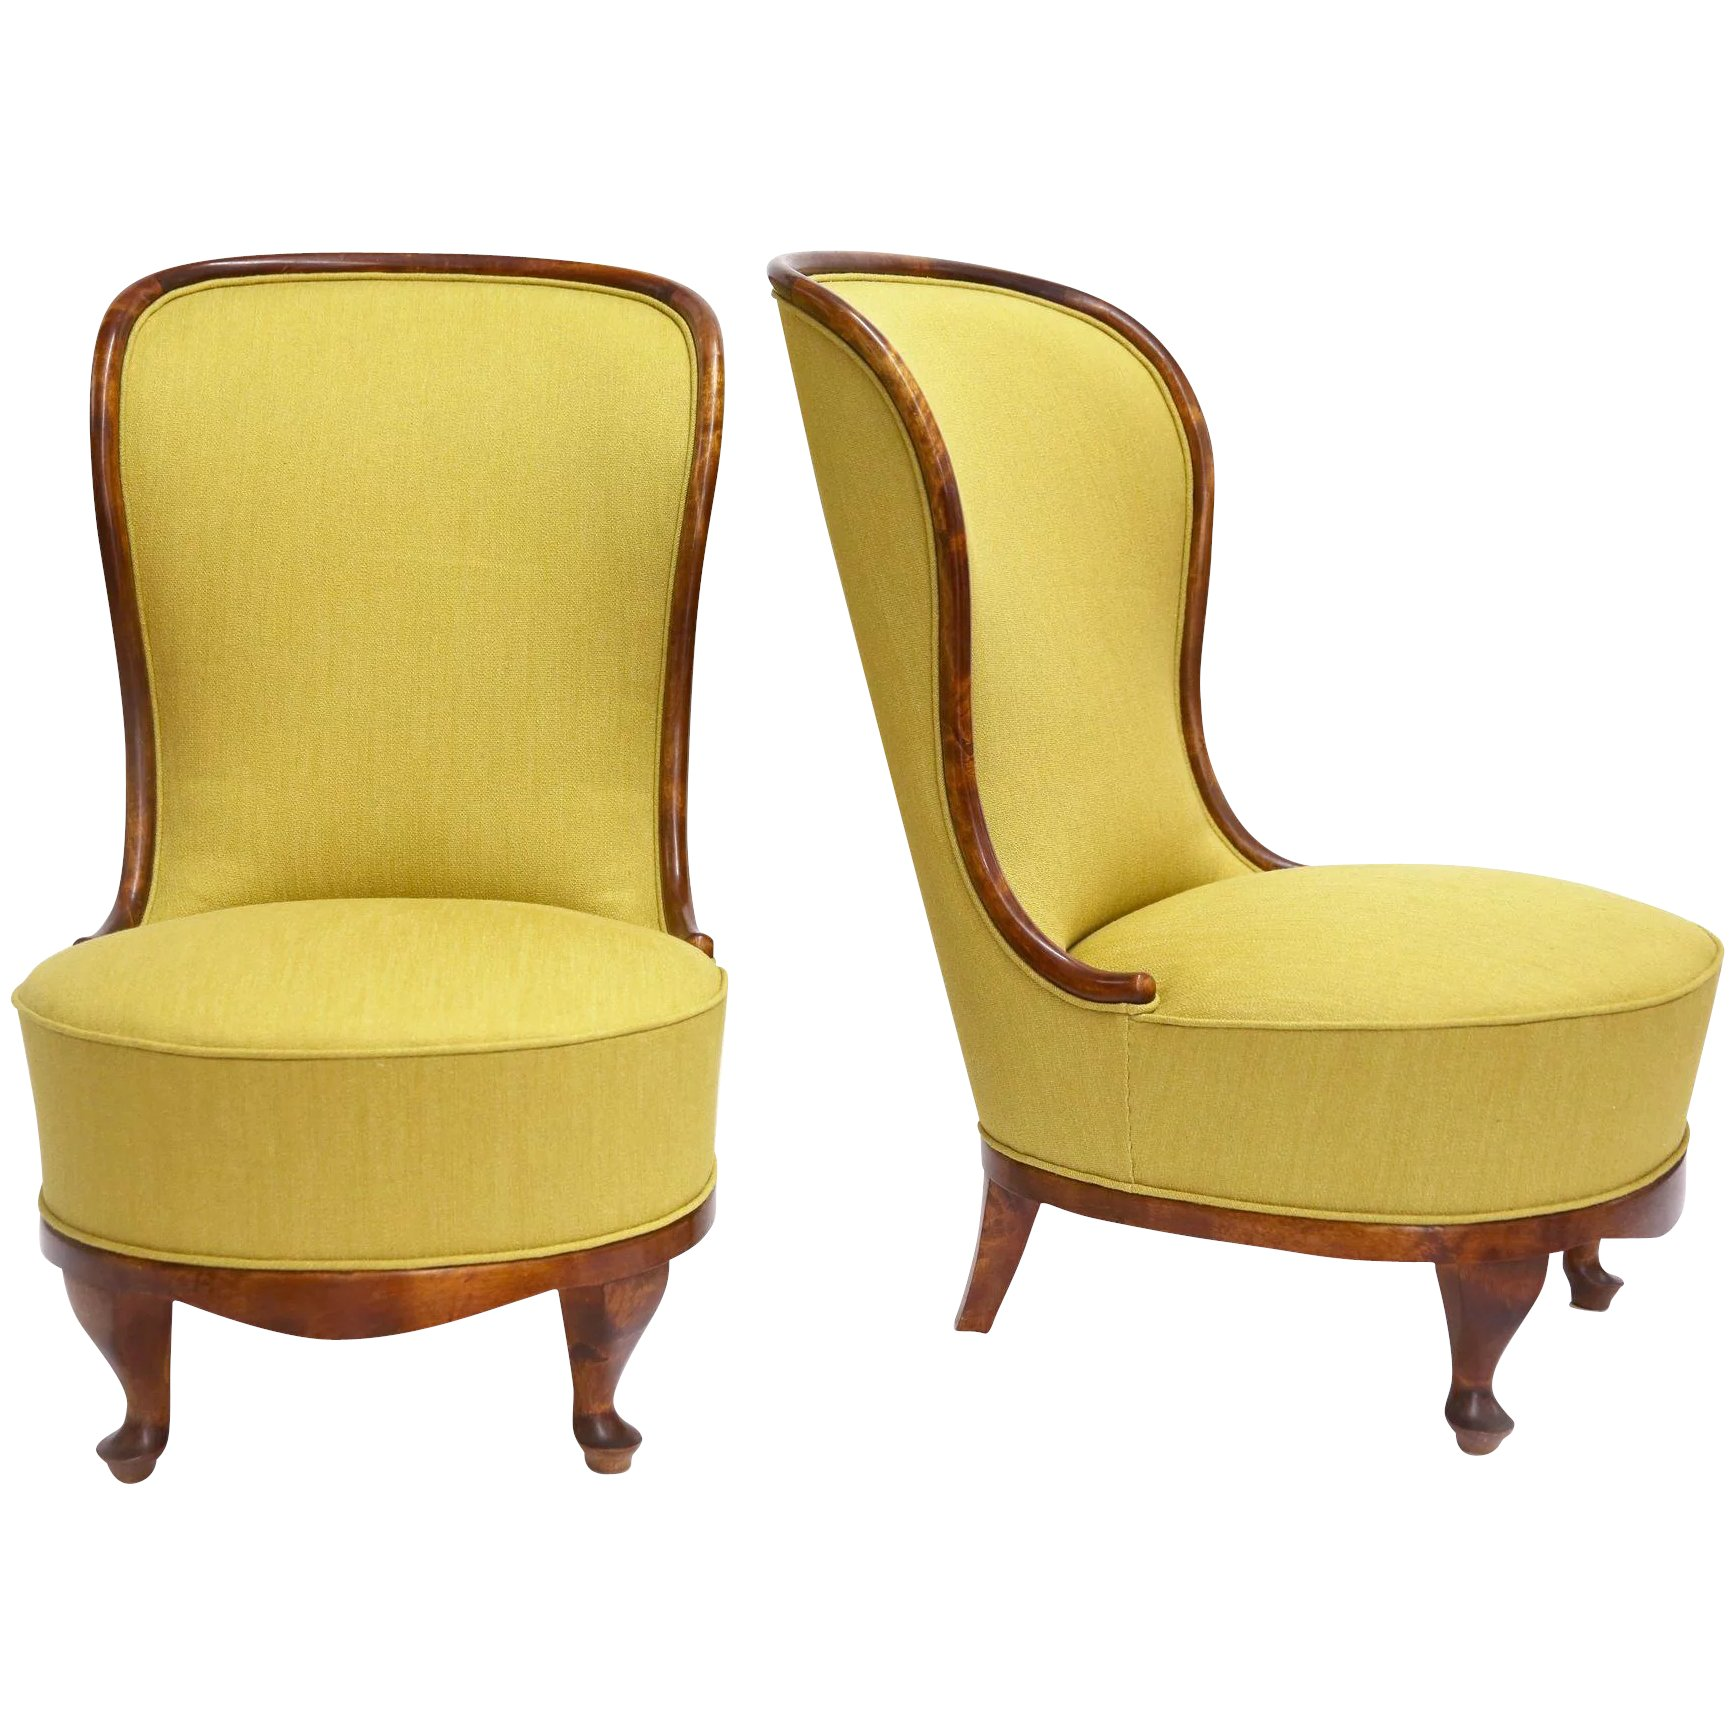 Pair Of Slipper Chairs By Tor Wolfenstein Sweden Early 1940s